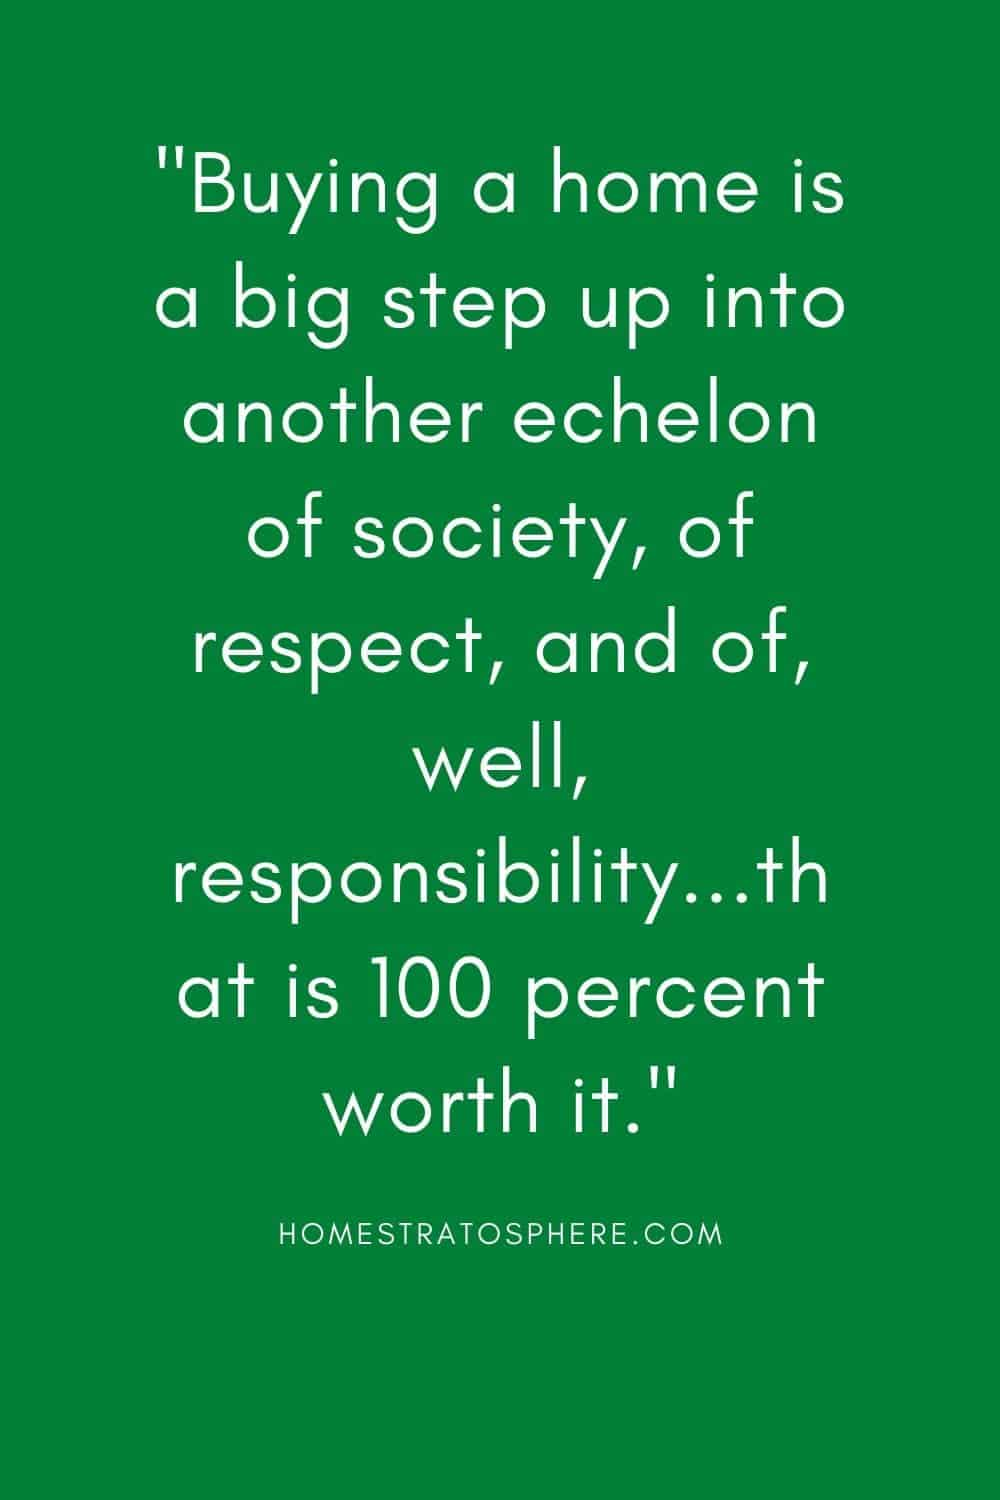 """Buying a home is a big step up into another echelon of society, of respect, and of, well, responsibility...that is 100 percent worth it."""